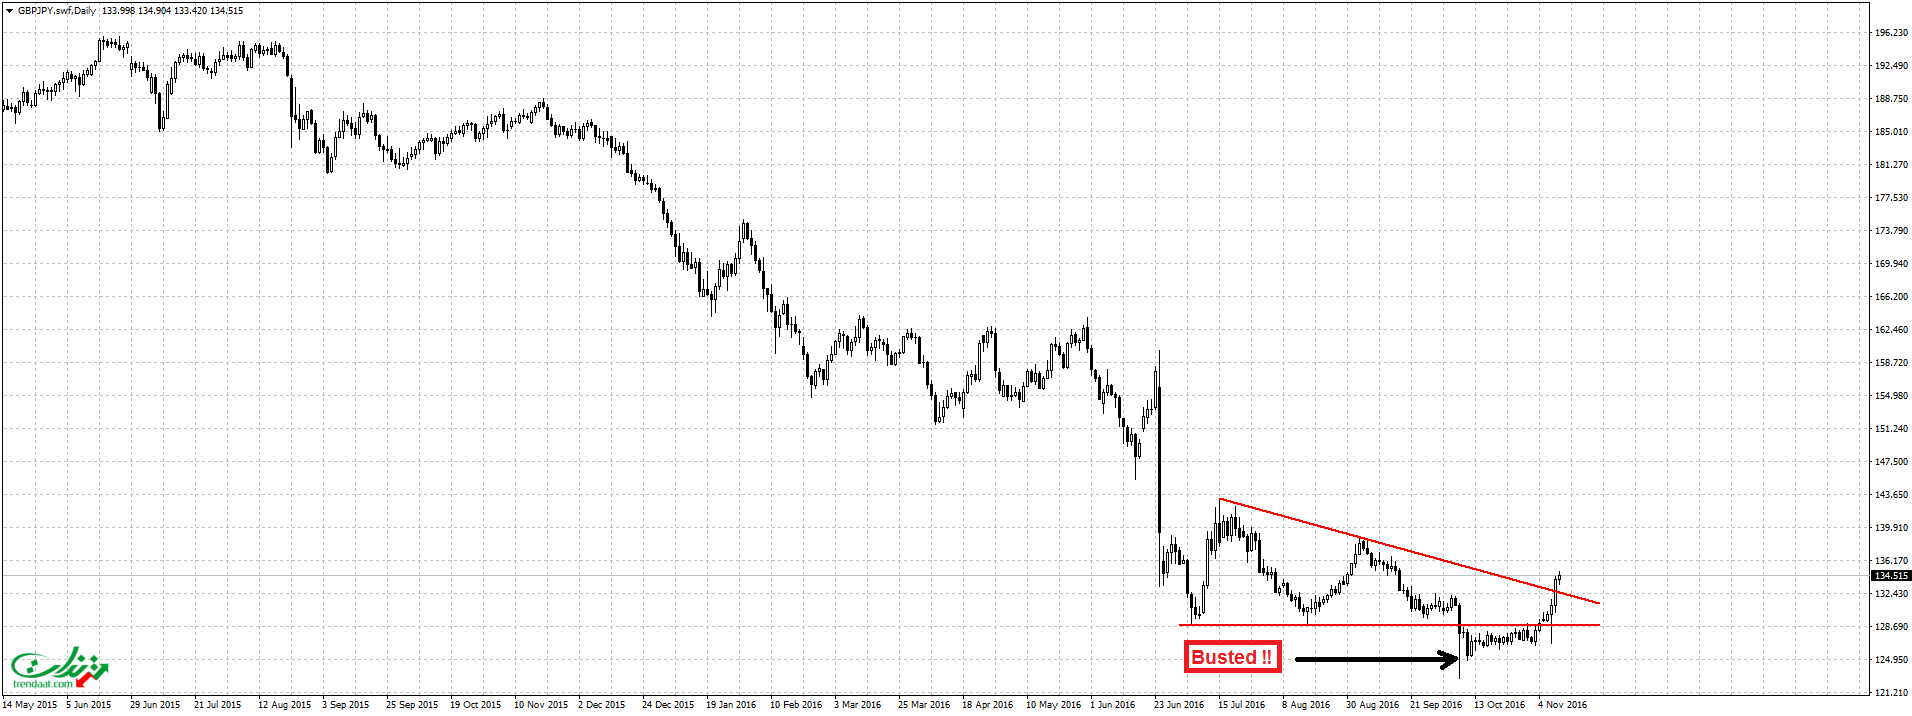 gbpjpy-swfdaily